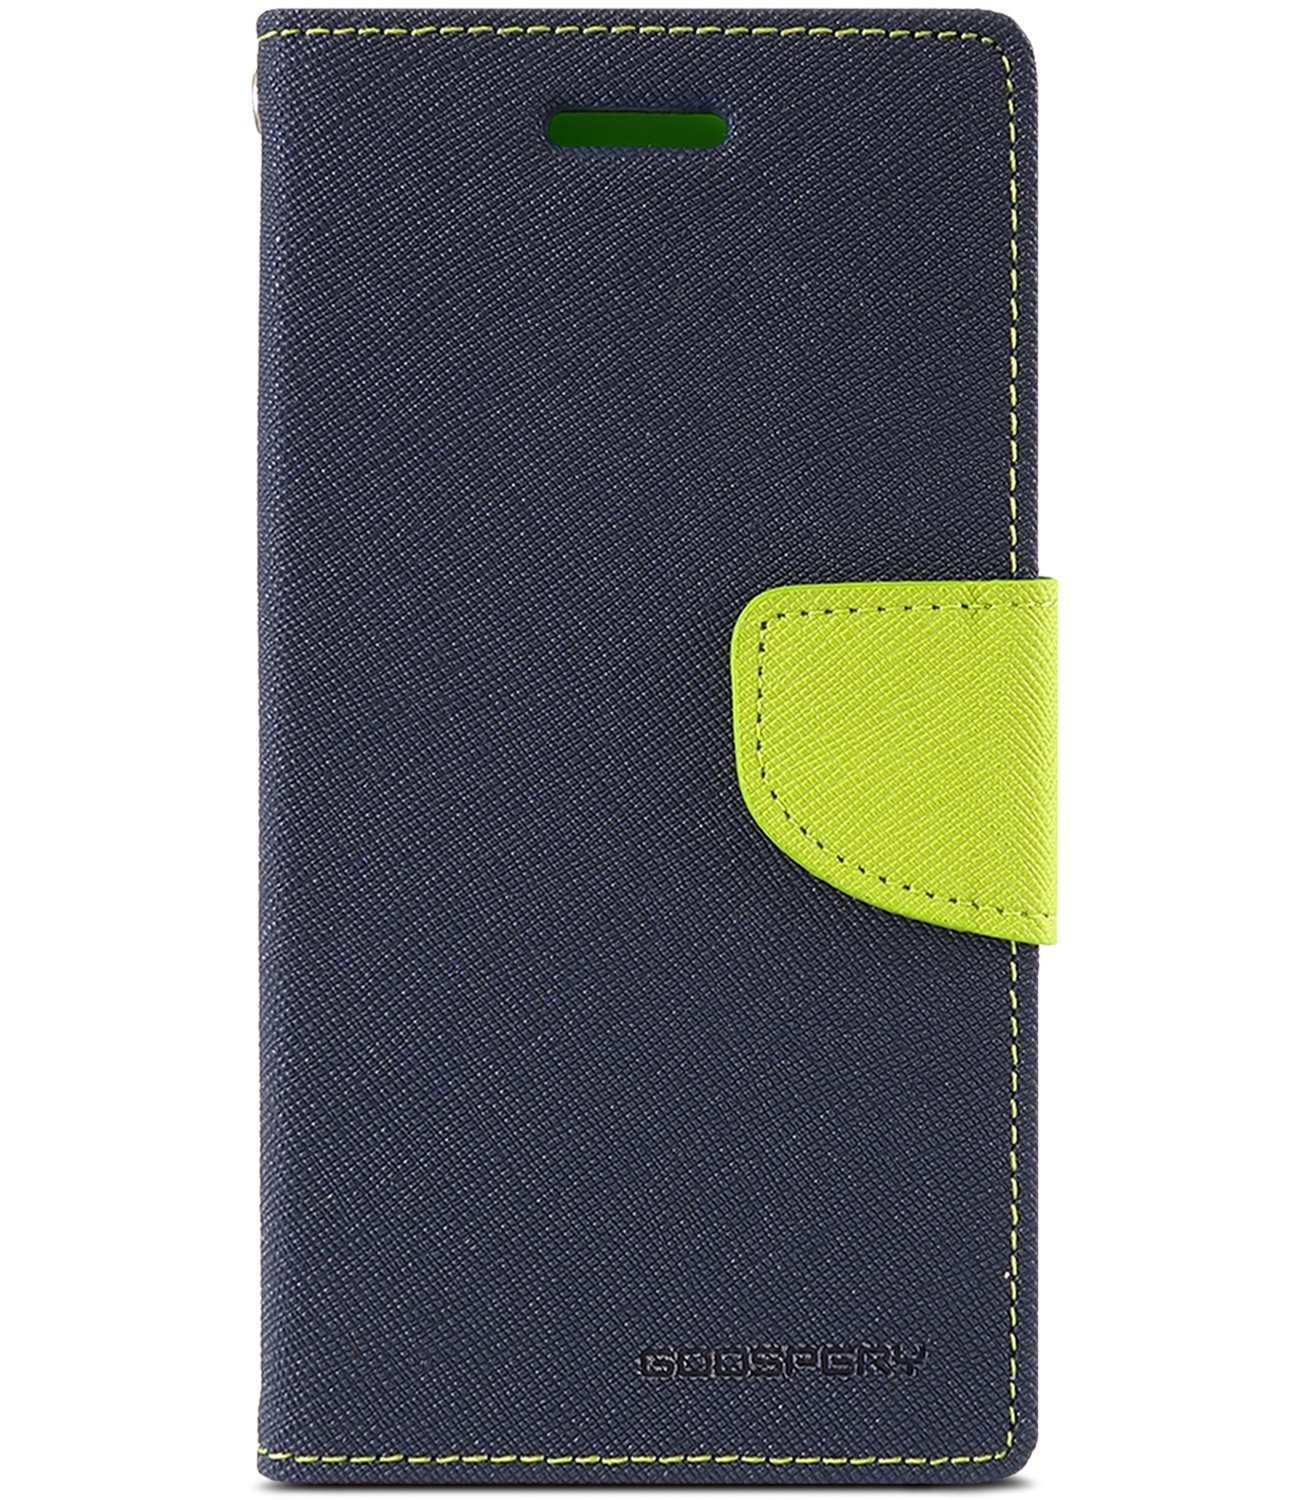 Htc One Max T6 Case Drop Protection Goospery Fancy Iphone 8 Diary Navy Lime Wallet Pu Saffiano Leather Id Card Slots Cash Slot Stand Flip Cover